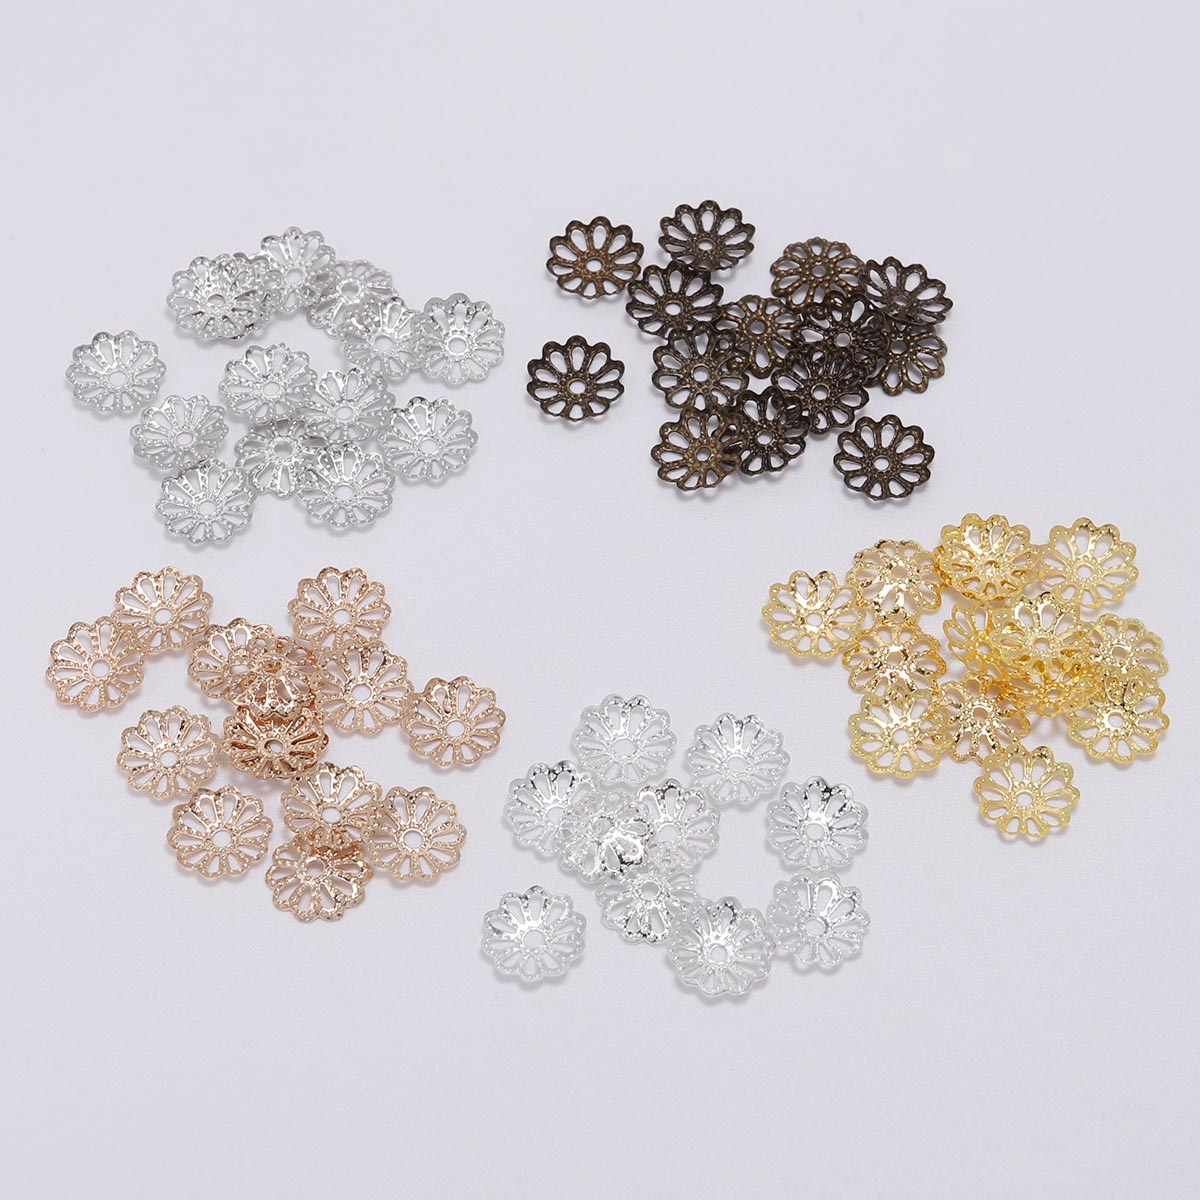 20x Flower Metal Tibetan Style Loose Spacer Flat Bead Caps End Cap DIY Jewelry